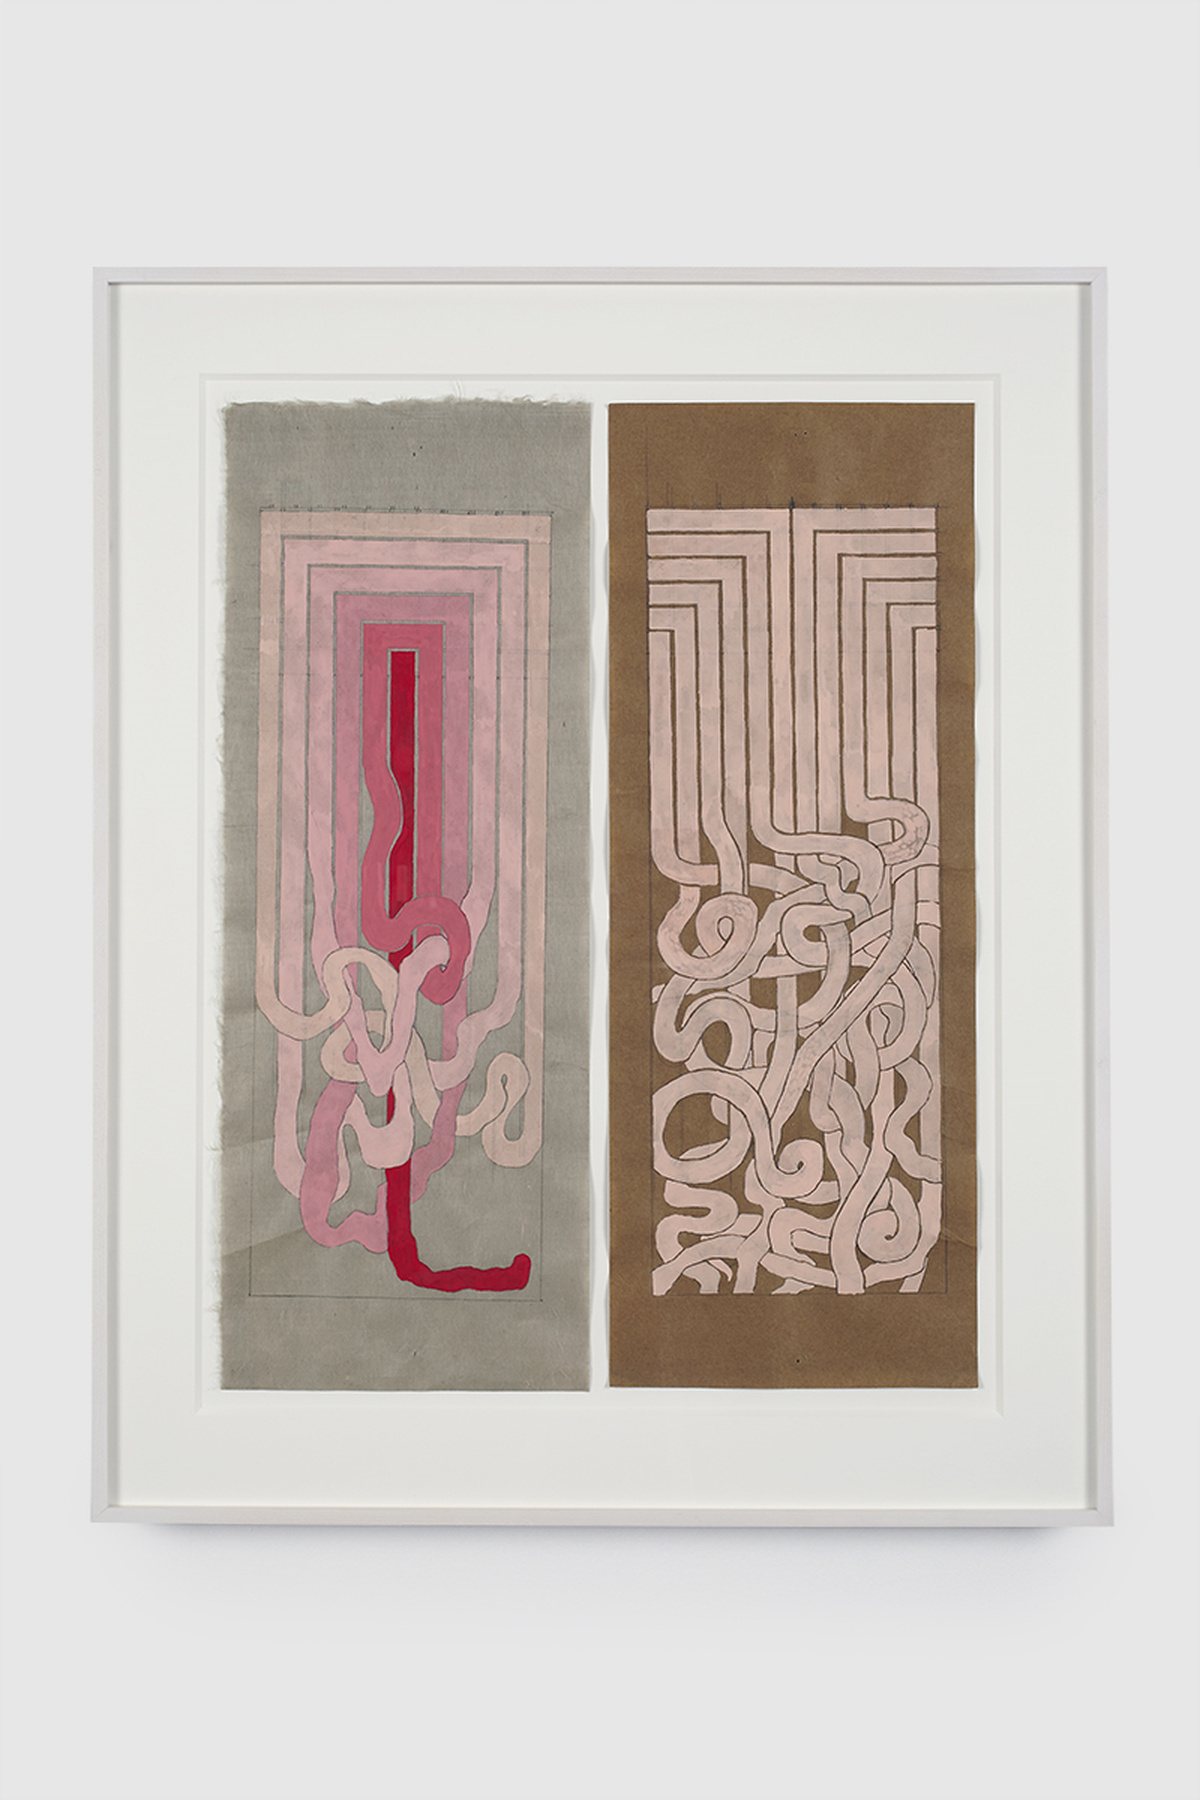 81.Hoeber_Angular to Curved Experiments 1&2, 2015_Gouache and graphite on mulberry paper_Approx 18x7 in each piece